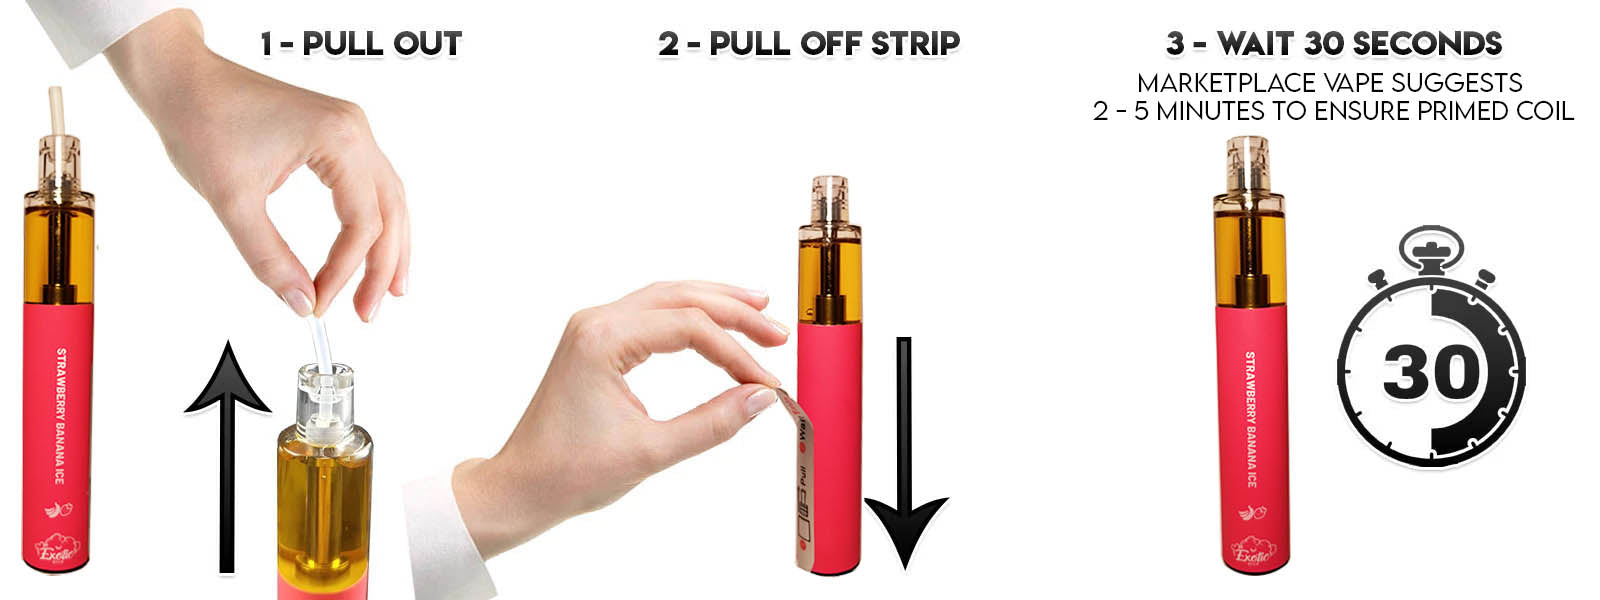 How to use the Exotic Stick 2000+ Puff Disposable